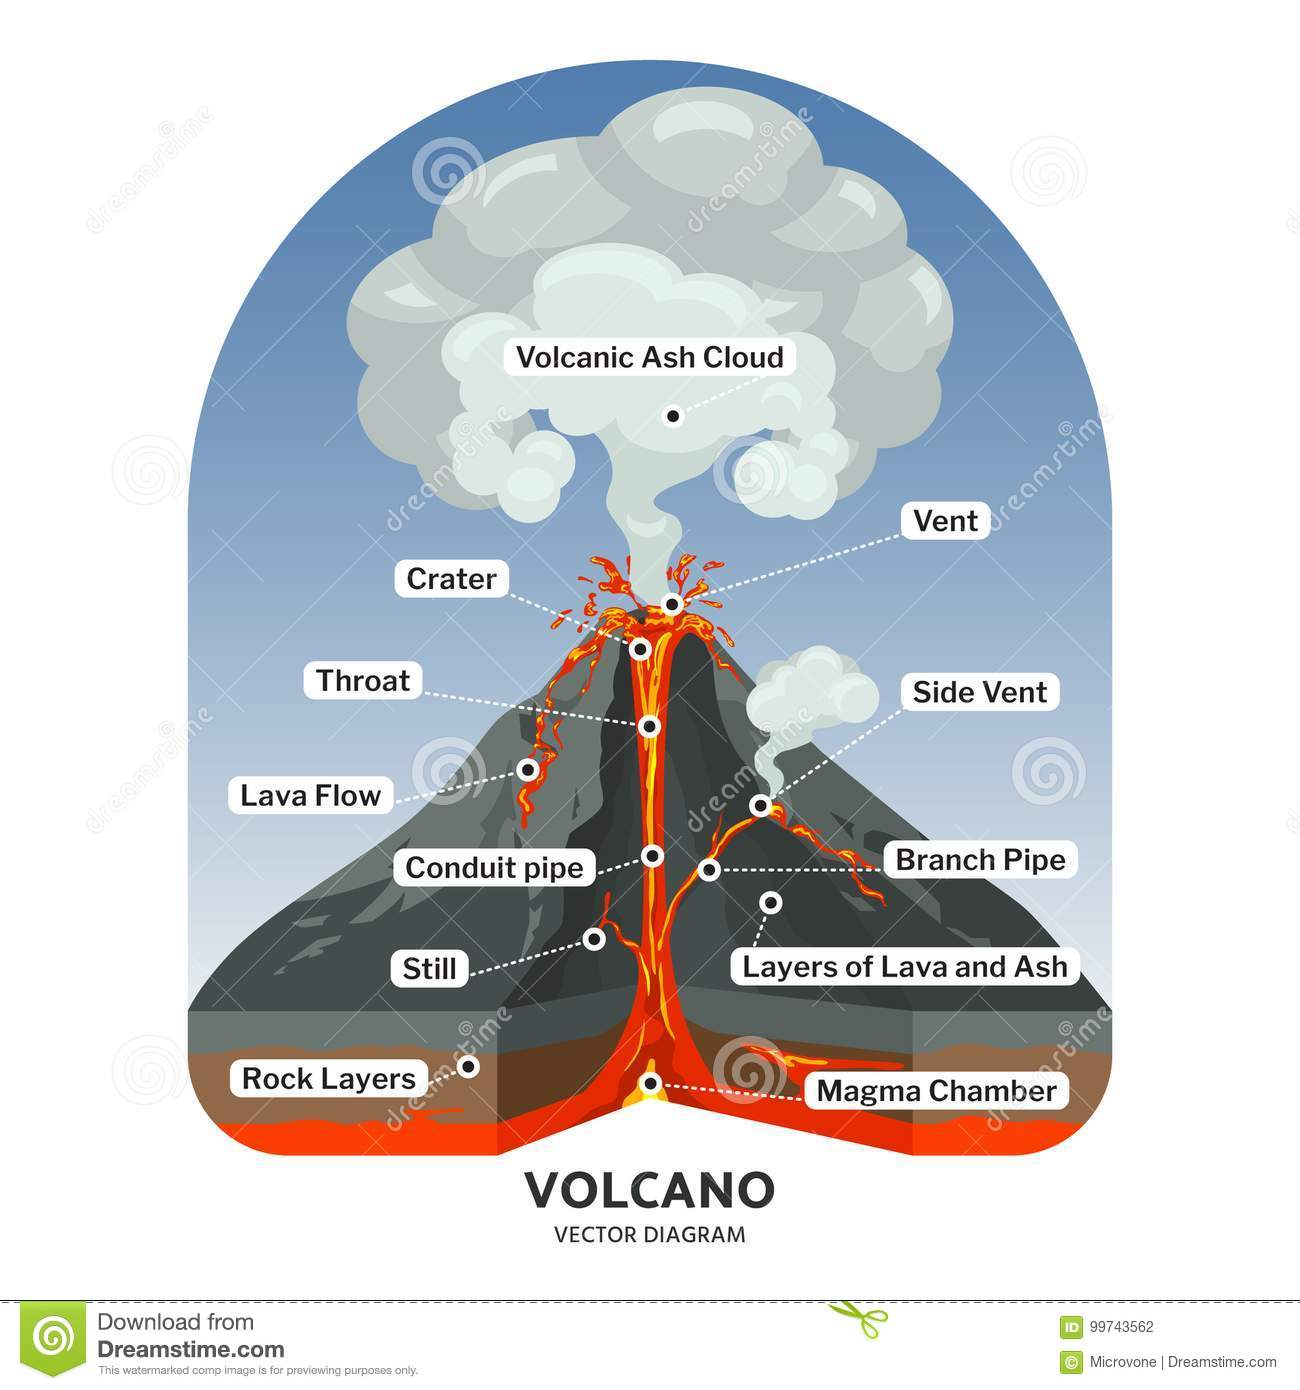 Volcano Cross Section With Hot Lava And Volcanic Ash Cloud